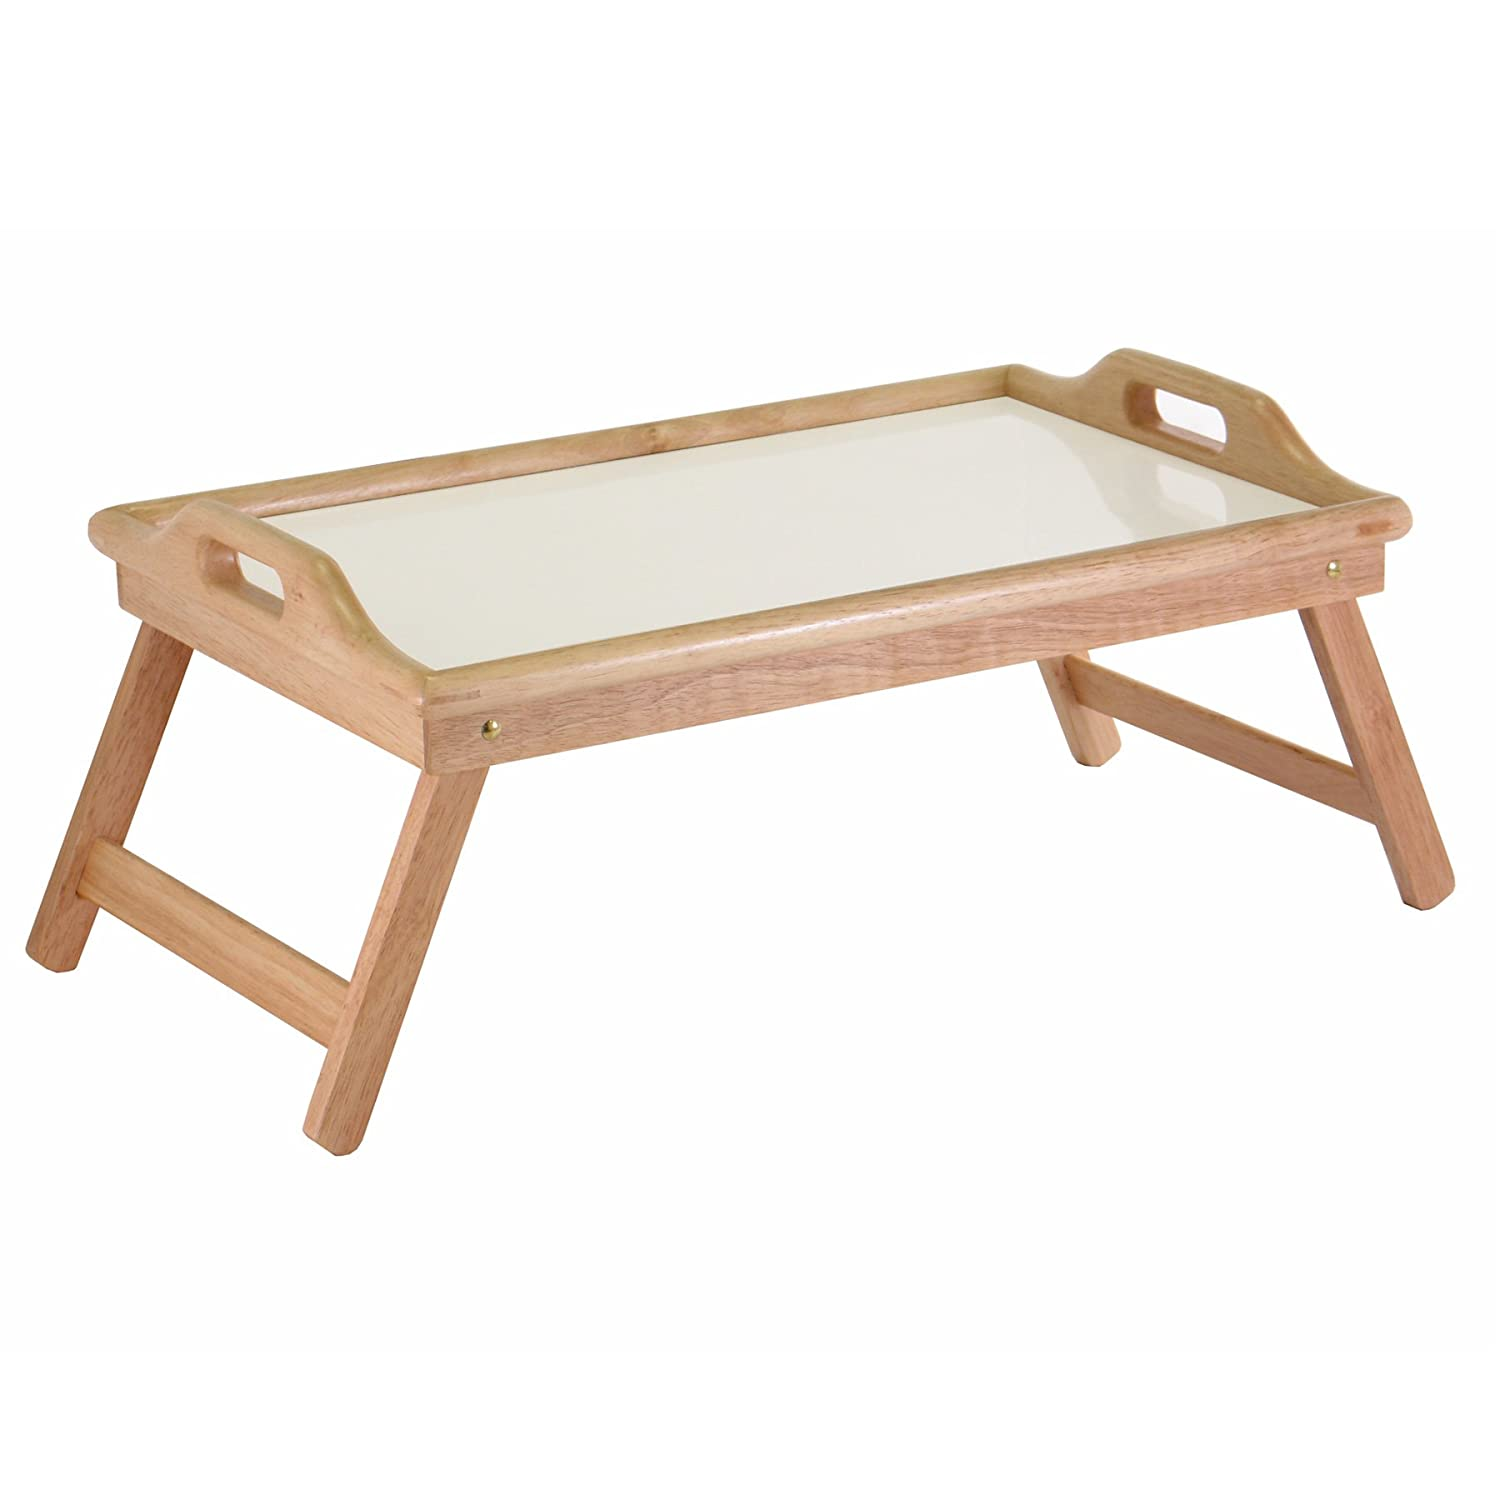 Winsome Wood 98122 Sherwood Bed Tray, Natural and White top